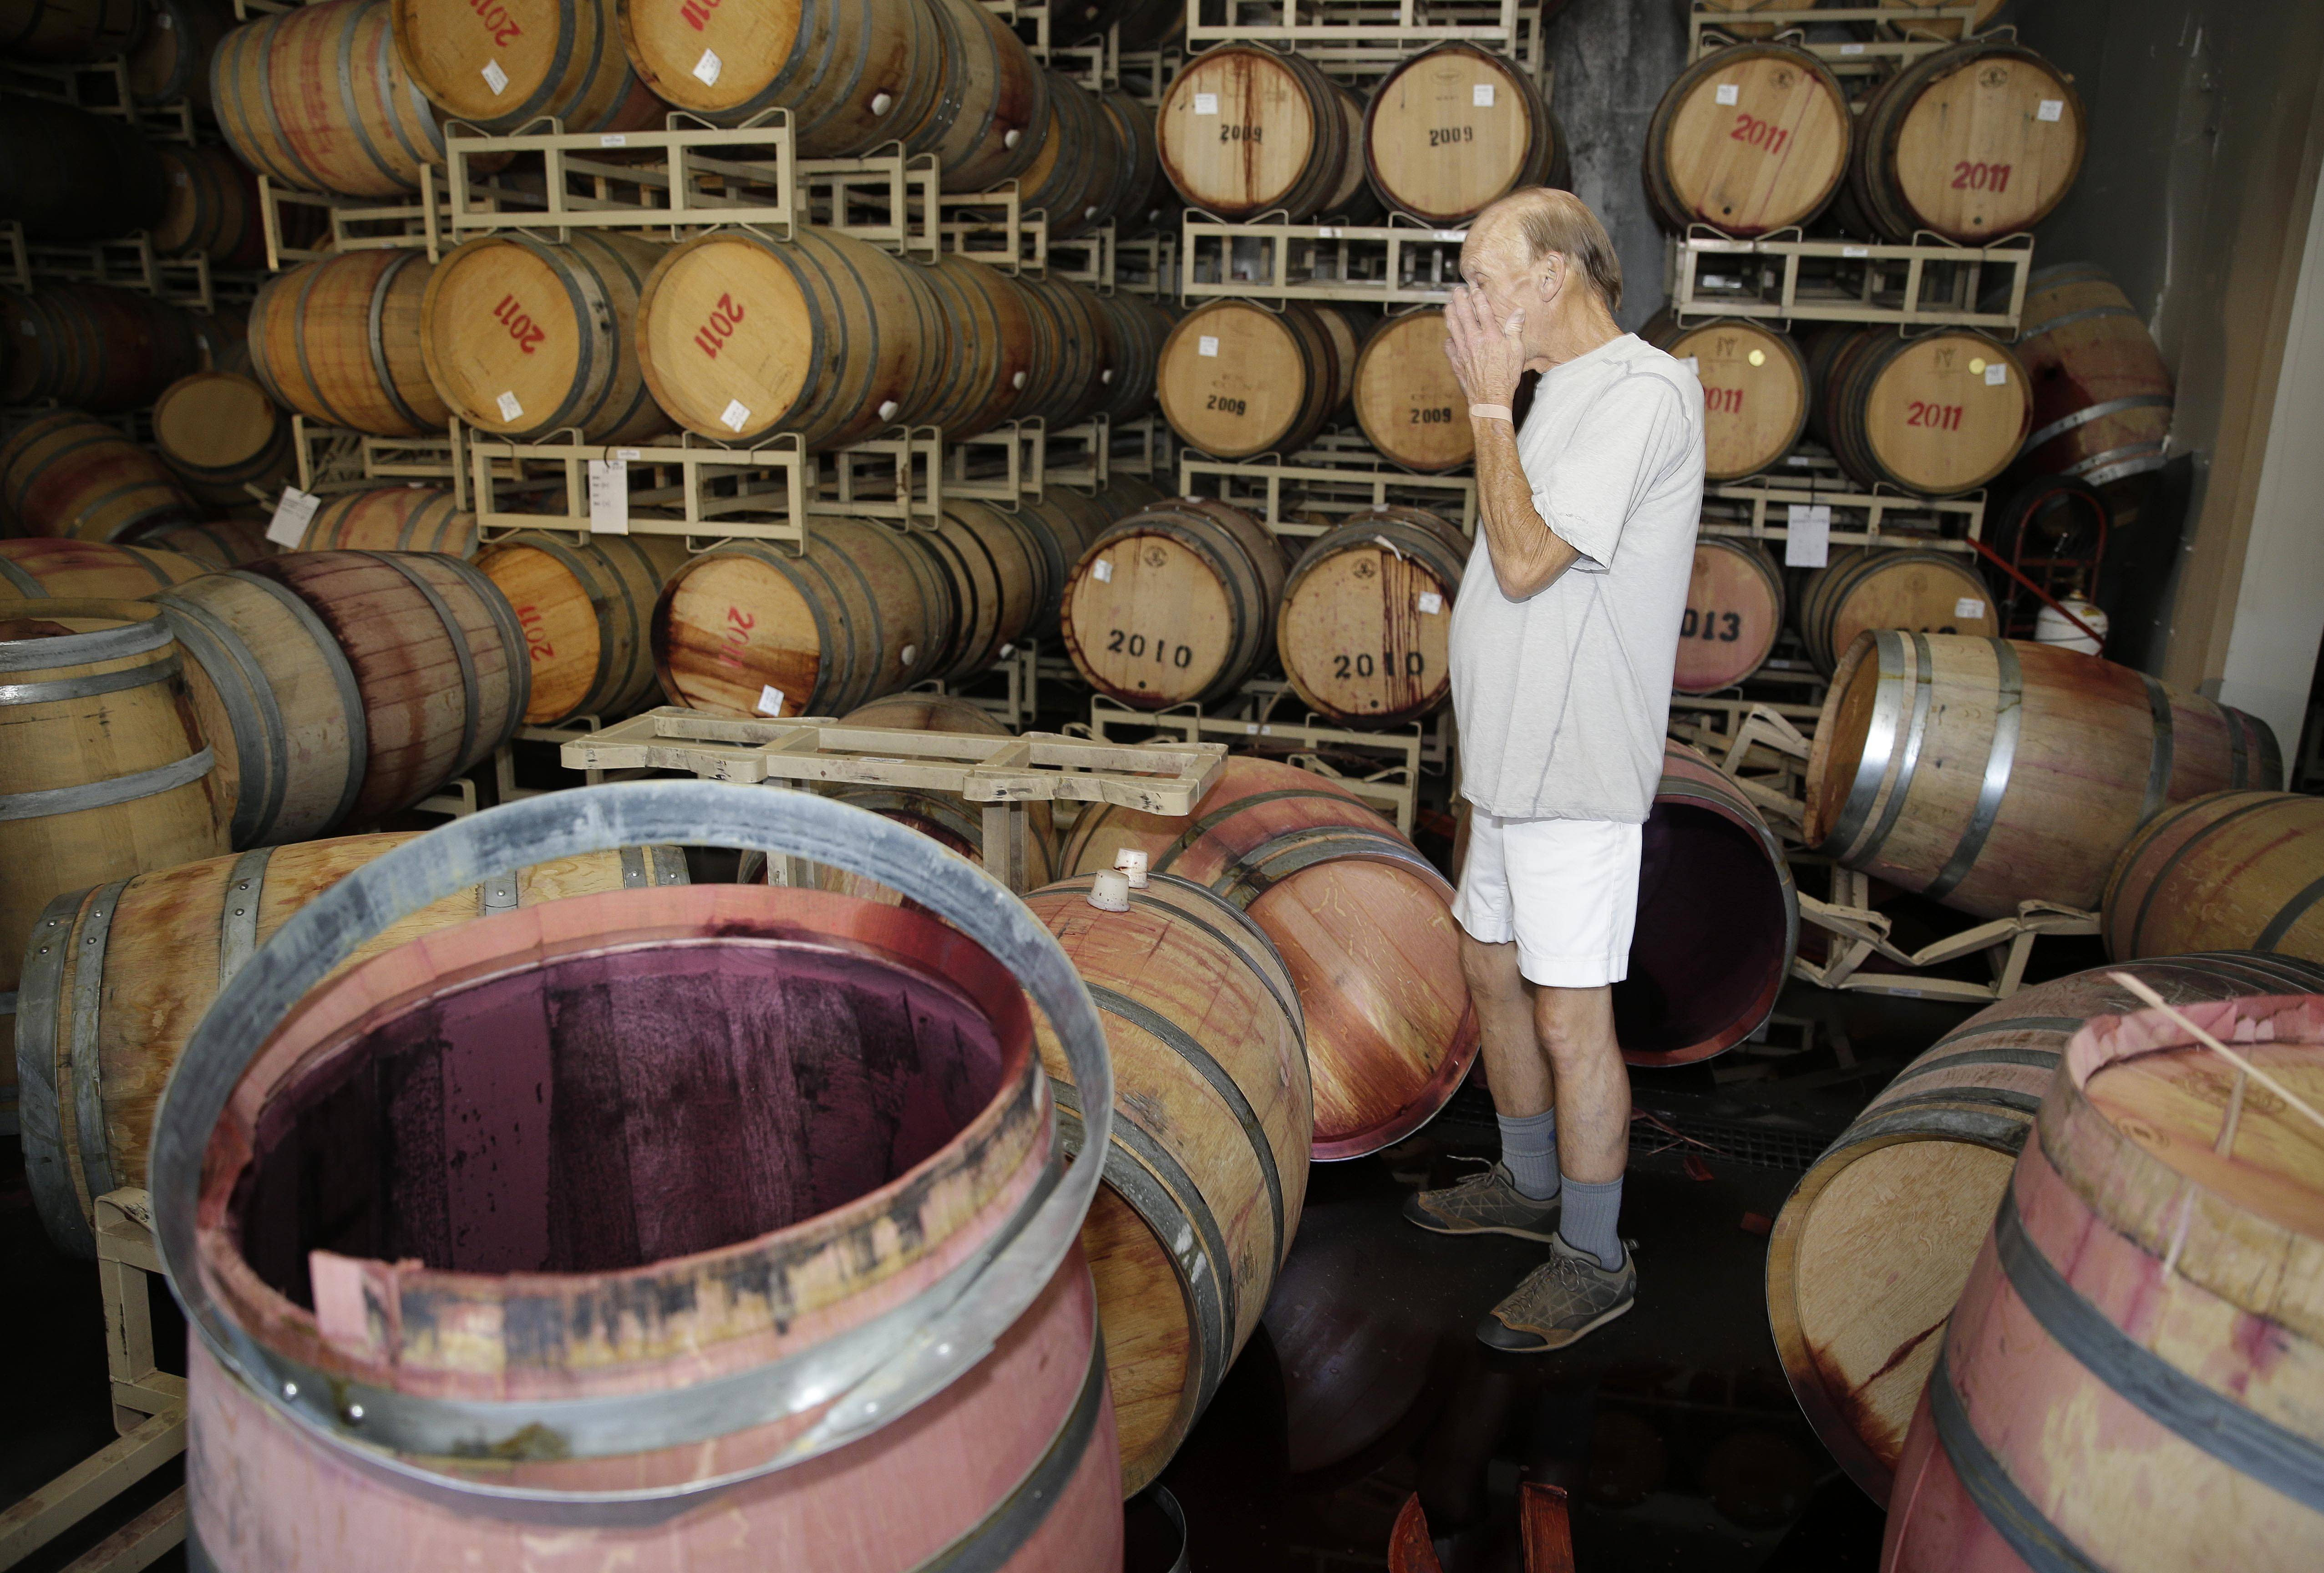 Winemaker Tom Montgomery reacts to seeing damage following an earthquake at the B.R. Cohn Winery barrel storage facility Sunday in Napa, Calif. Winemakers in California's storied Napa Valley woke up to thousands of broken bottles, barrels and gallons of ruined wine as a result of the earthquake.